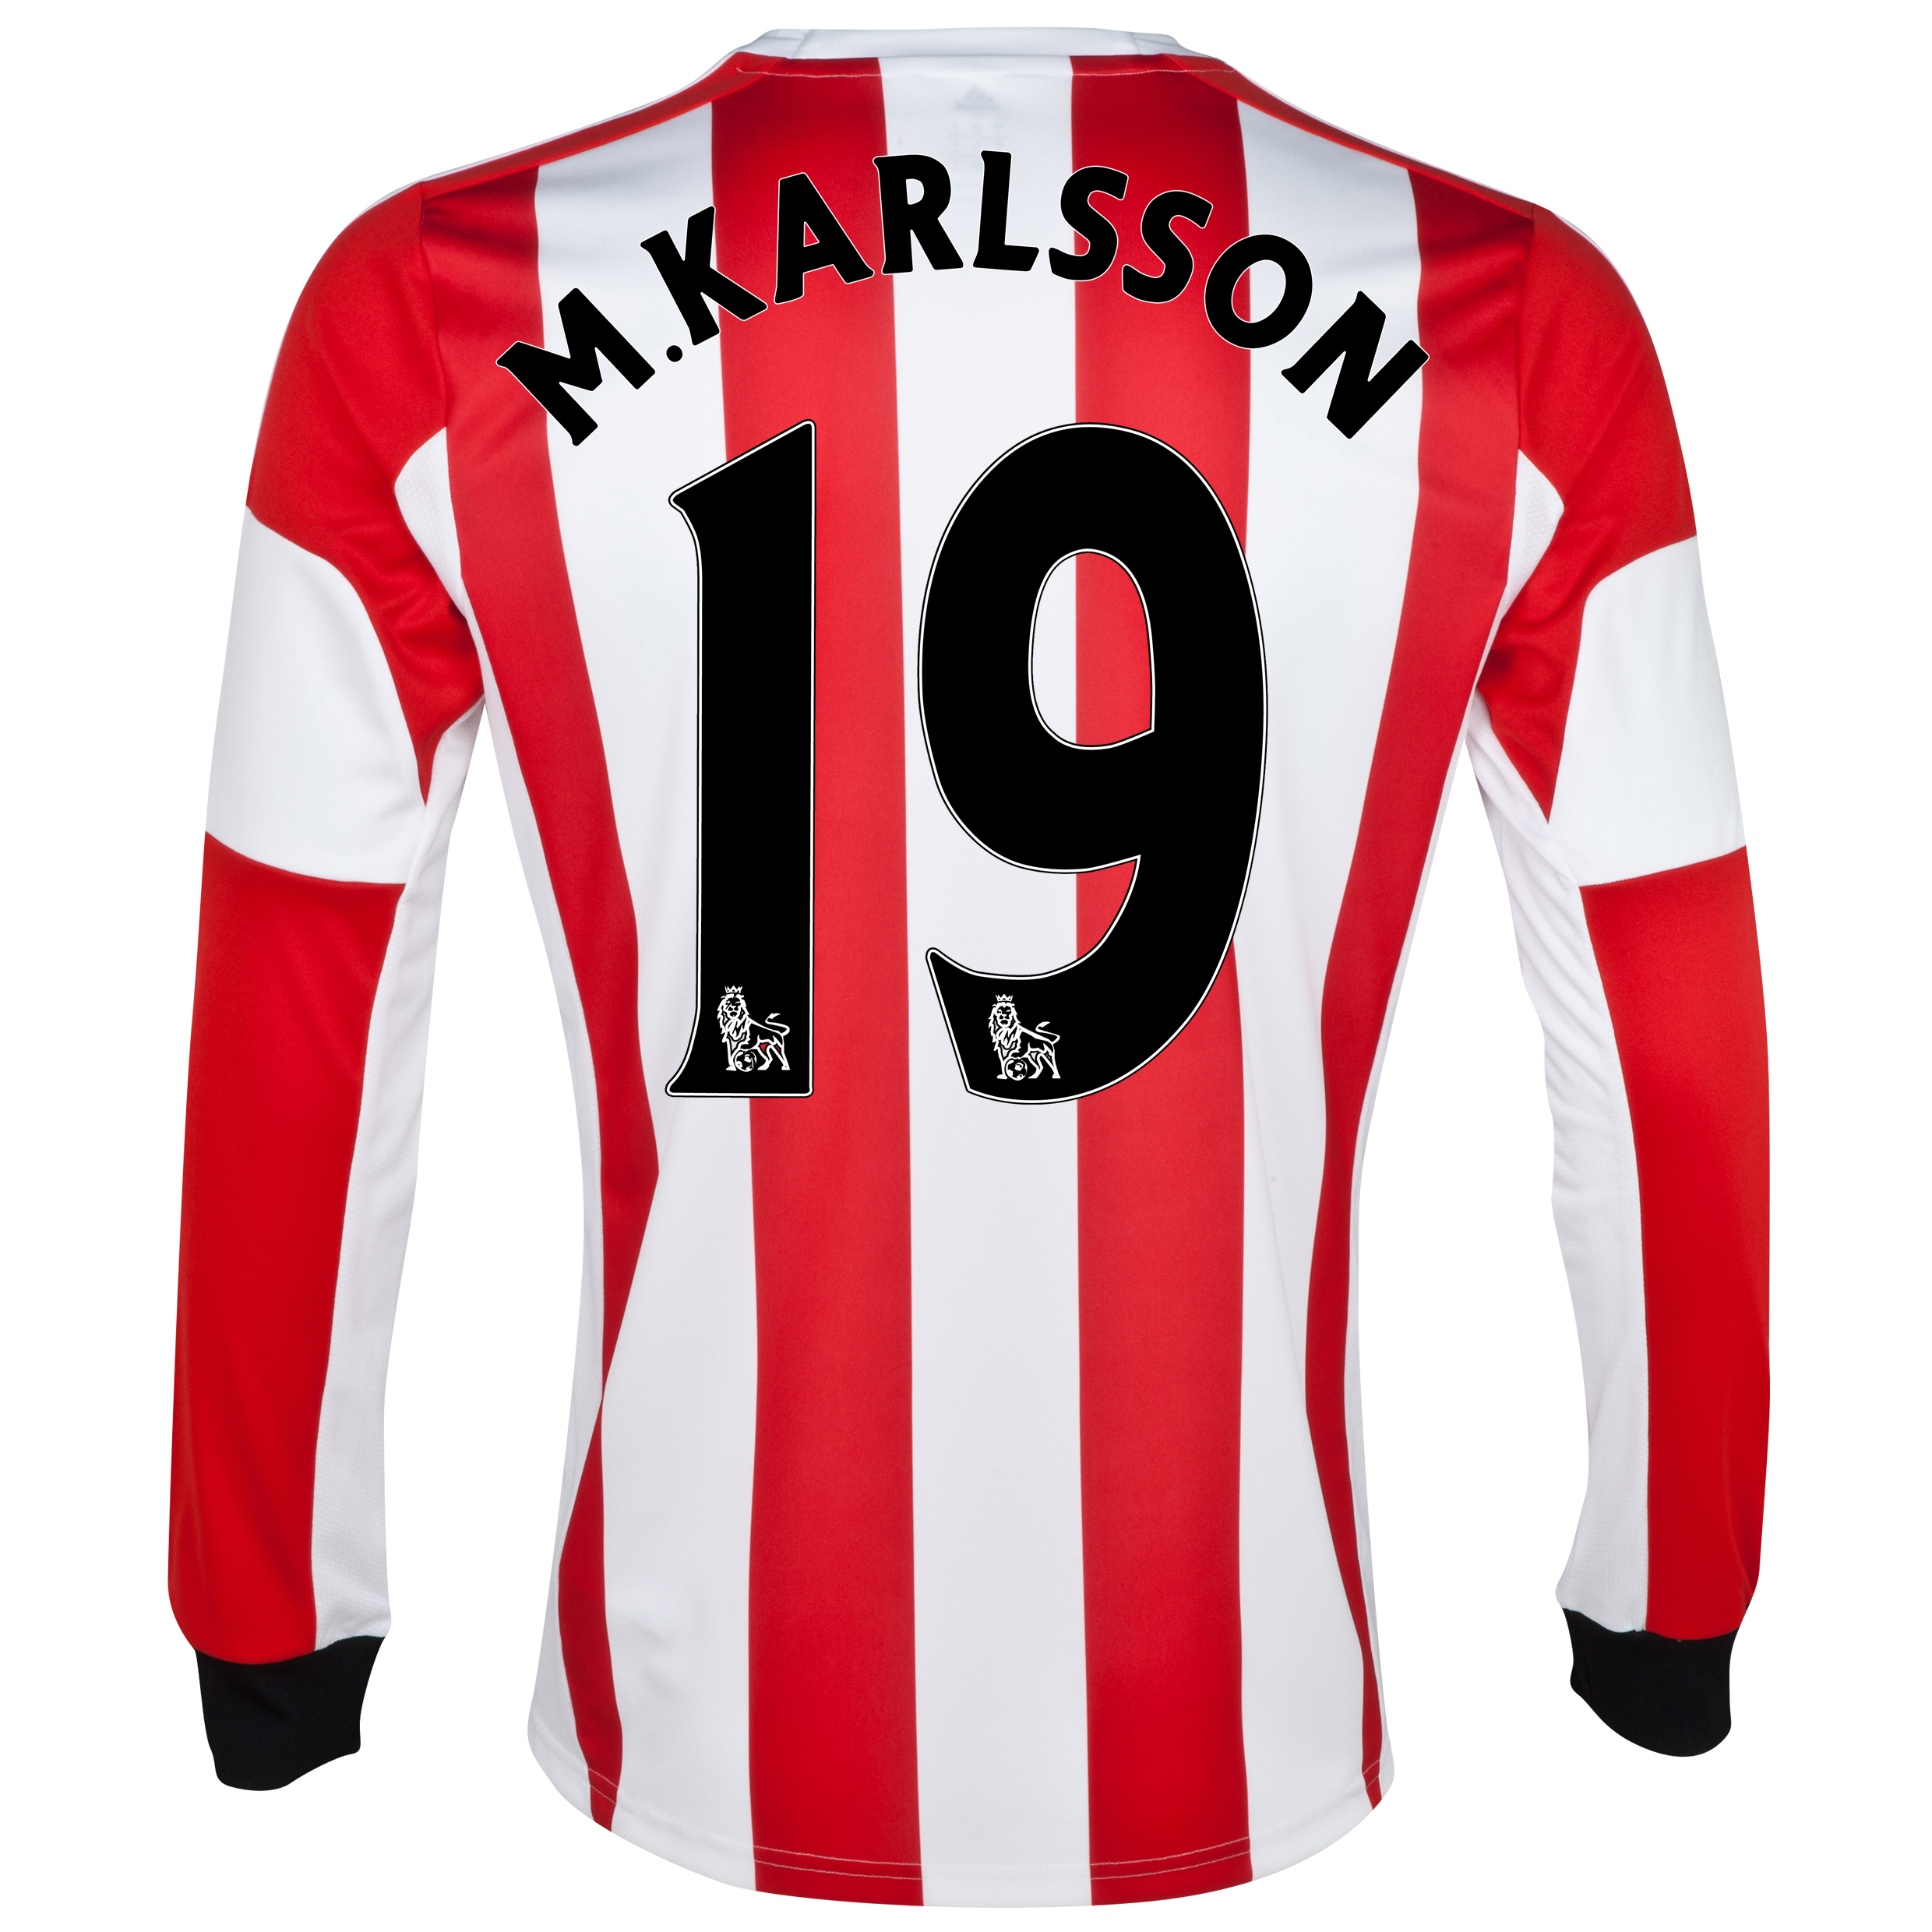 Sunderland Home Shirt 2013/14 - Long Sleeved with M.Karlsson 19 printing